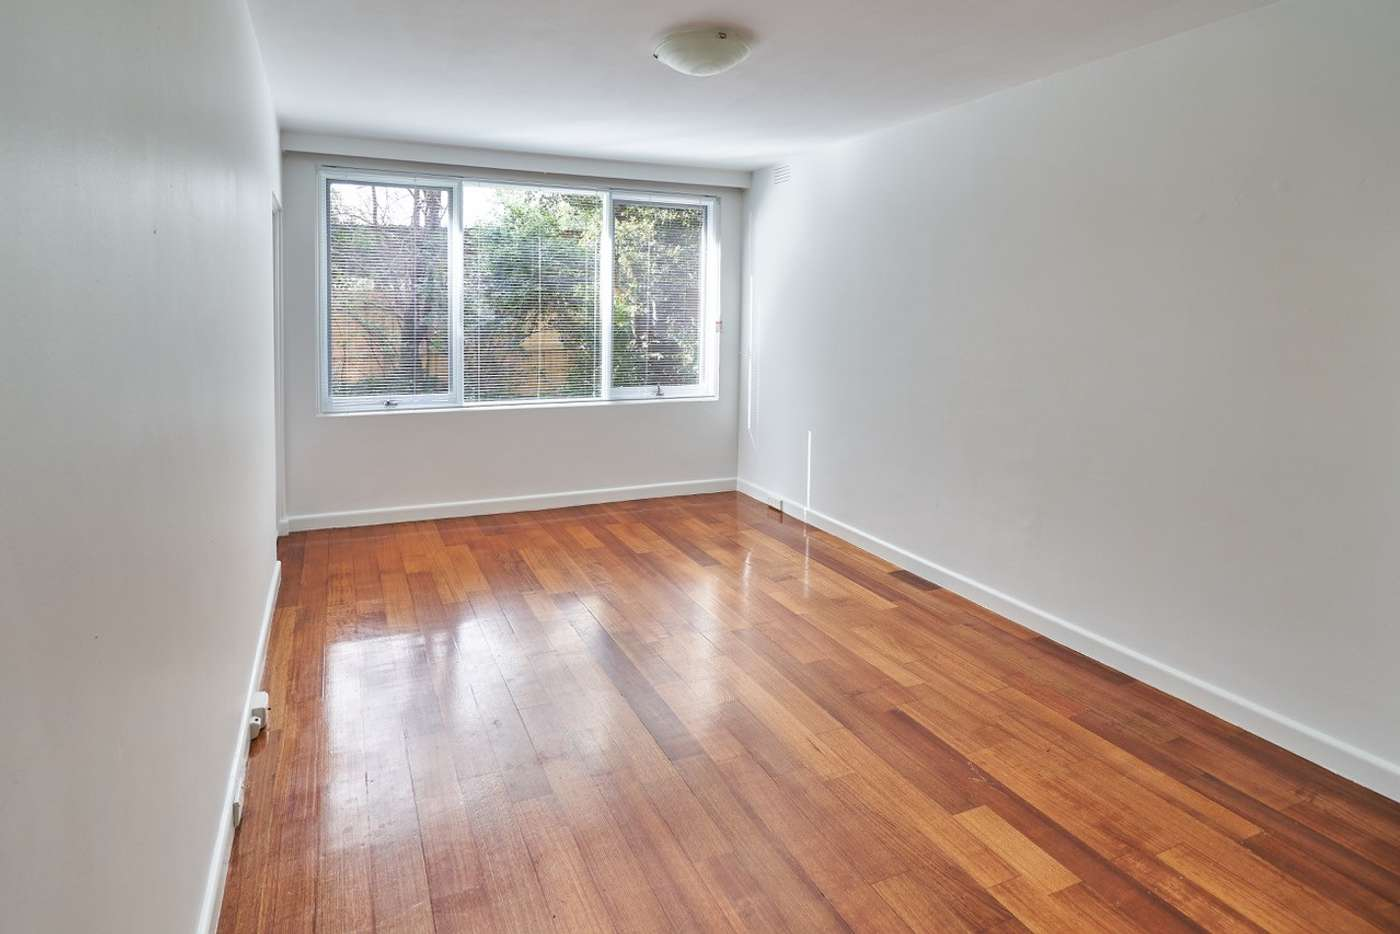 Fifth view of Homely unit listing, 7/80 Darling Road, Malvern East VIC 3145